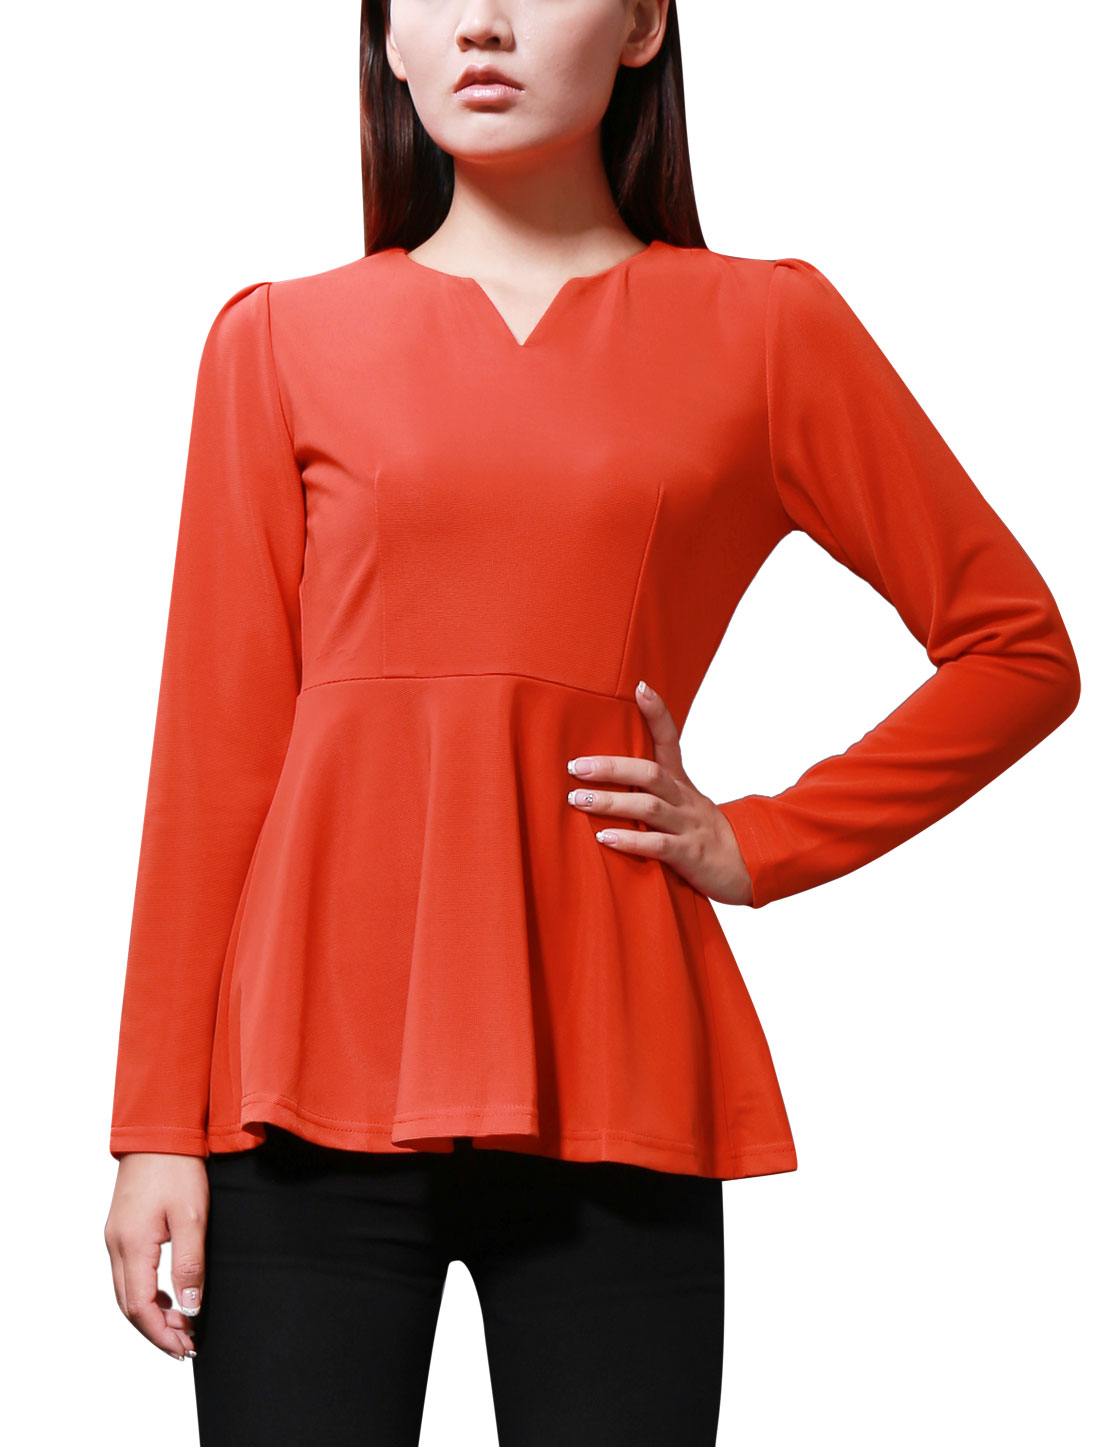 Women Solid Orange Color Hidden Zipper Back Closure Peplum Top L